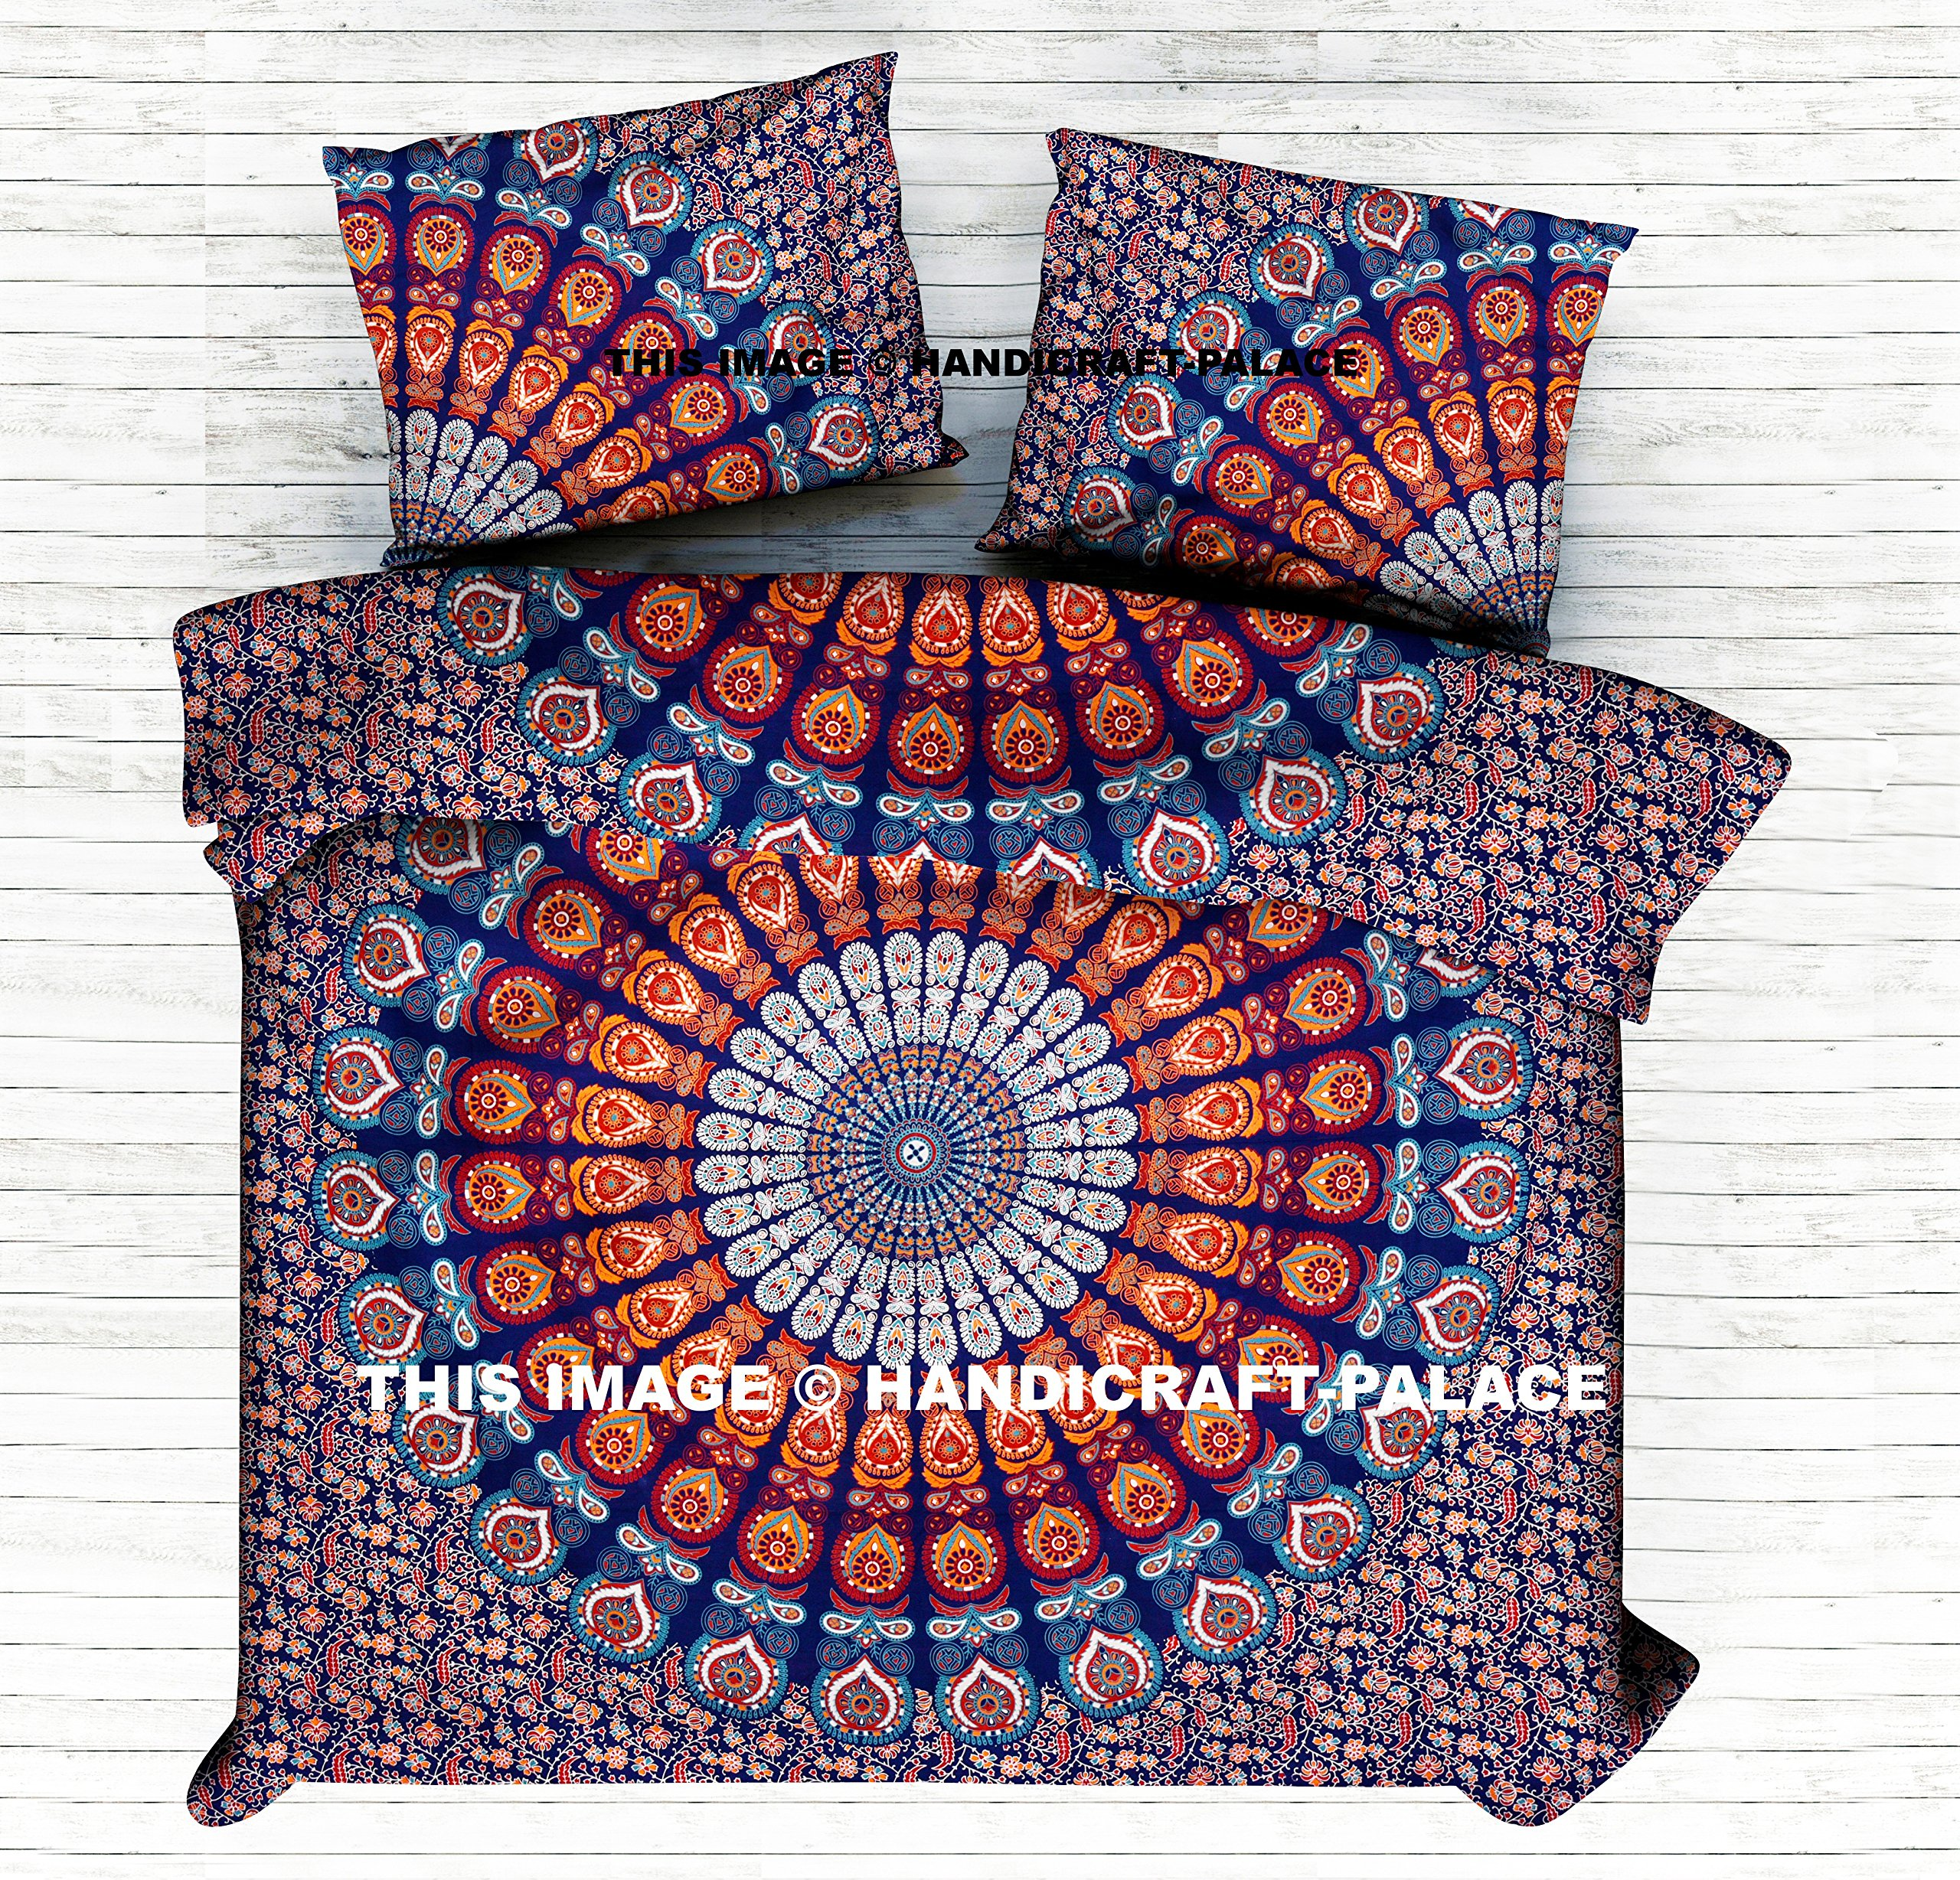 Ethnic Indian Peacock Mandala Print Bedding Duvet Quilt Cover Queen Duvet Set Cotton Handmade Bohemian By Handicraft-Palace